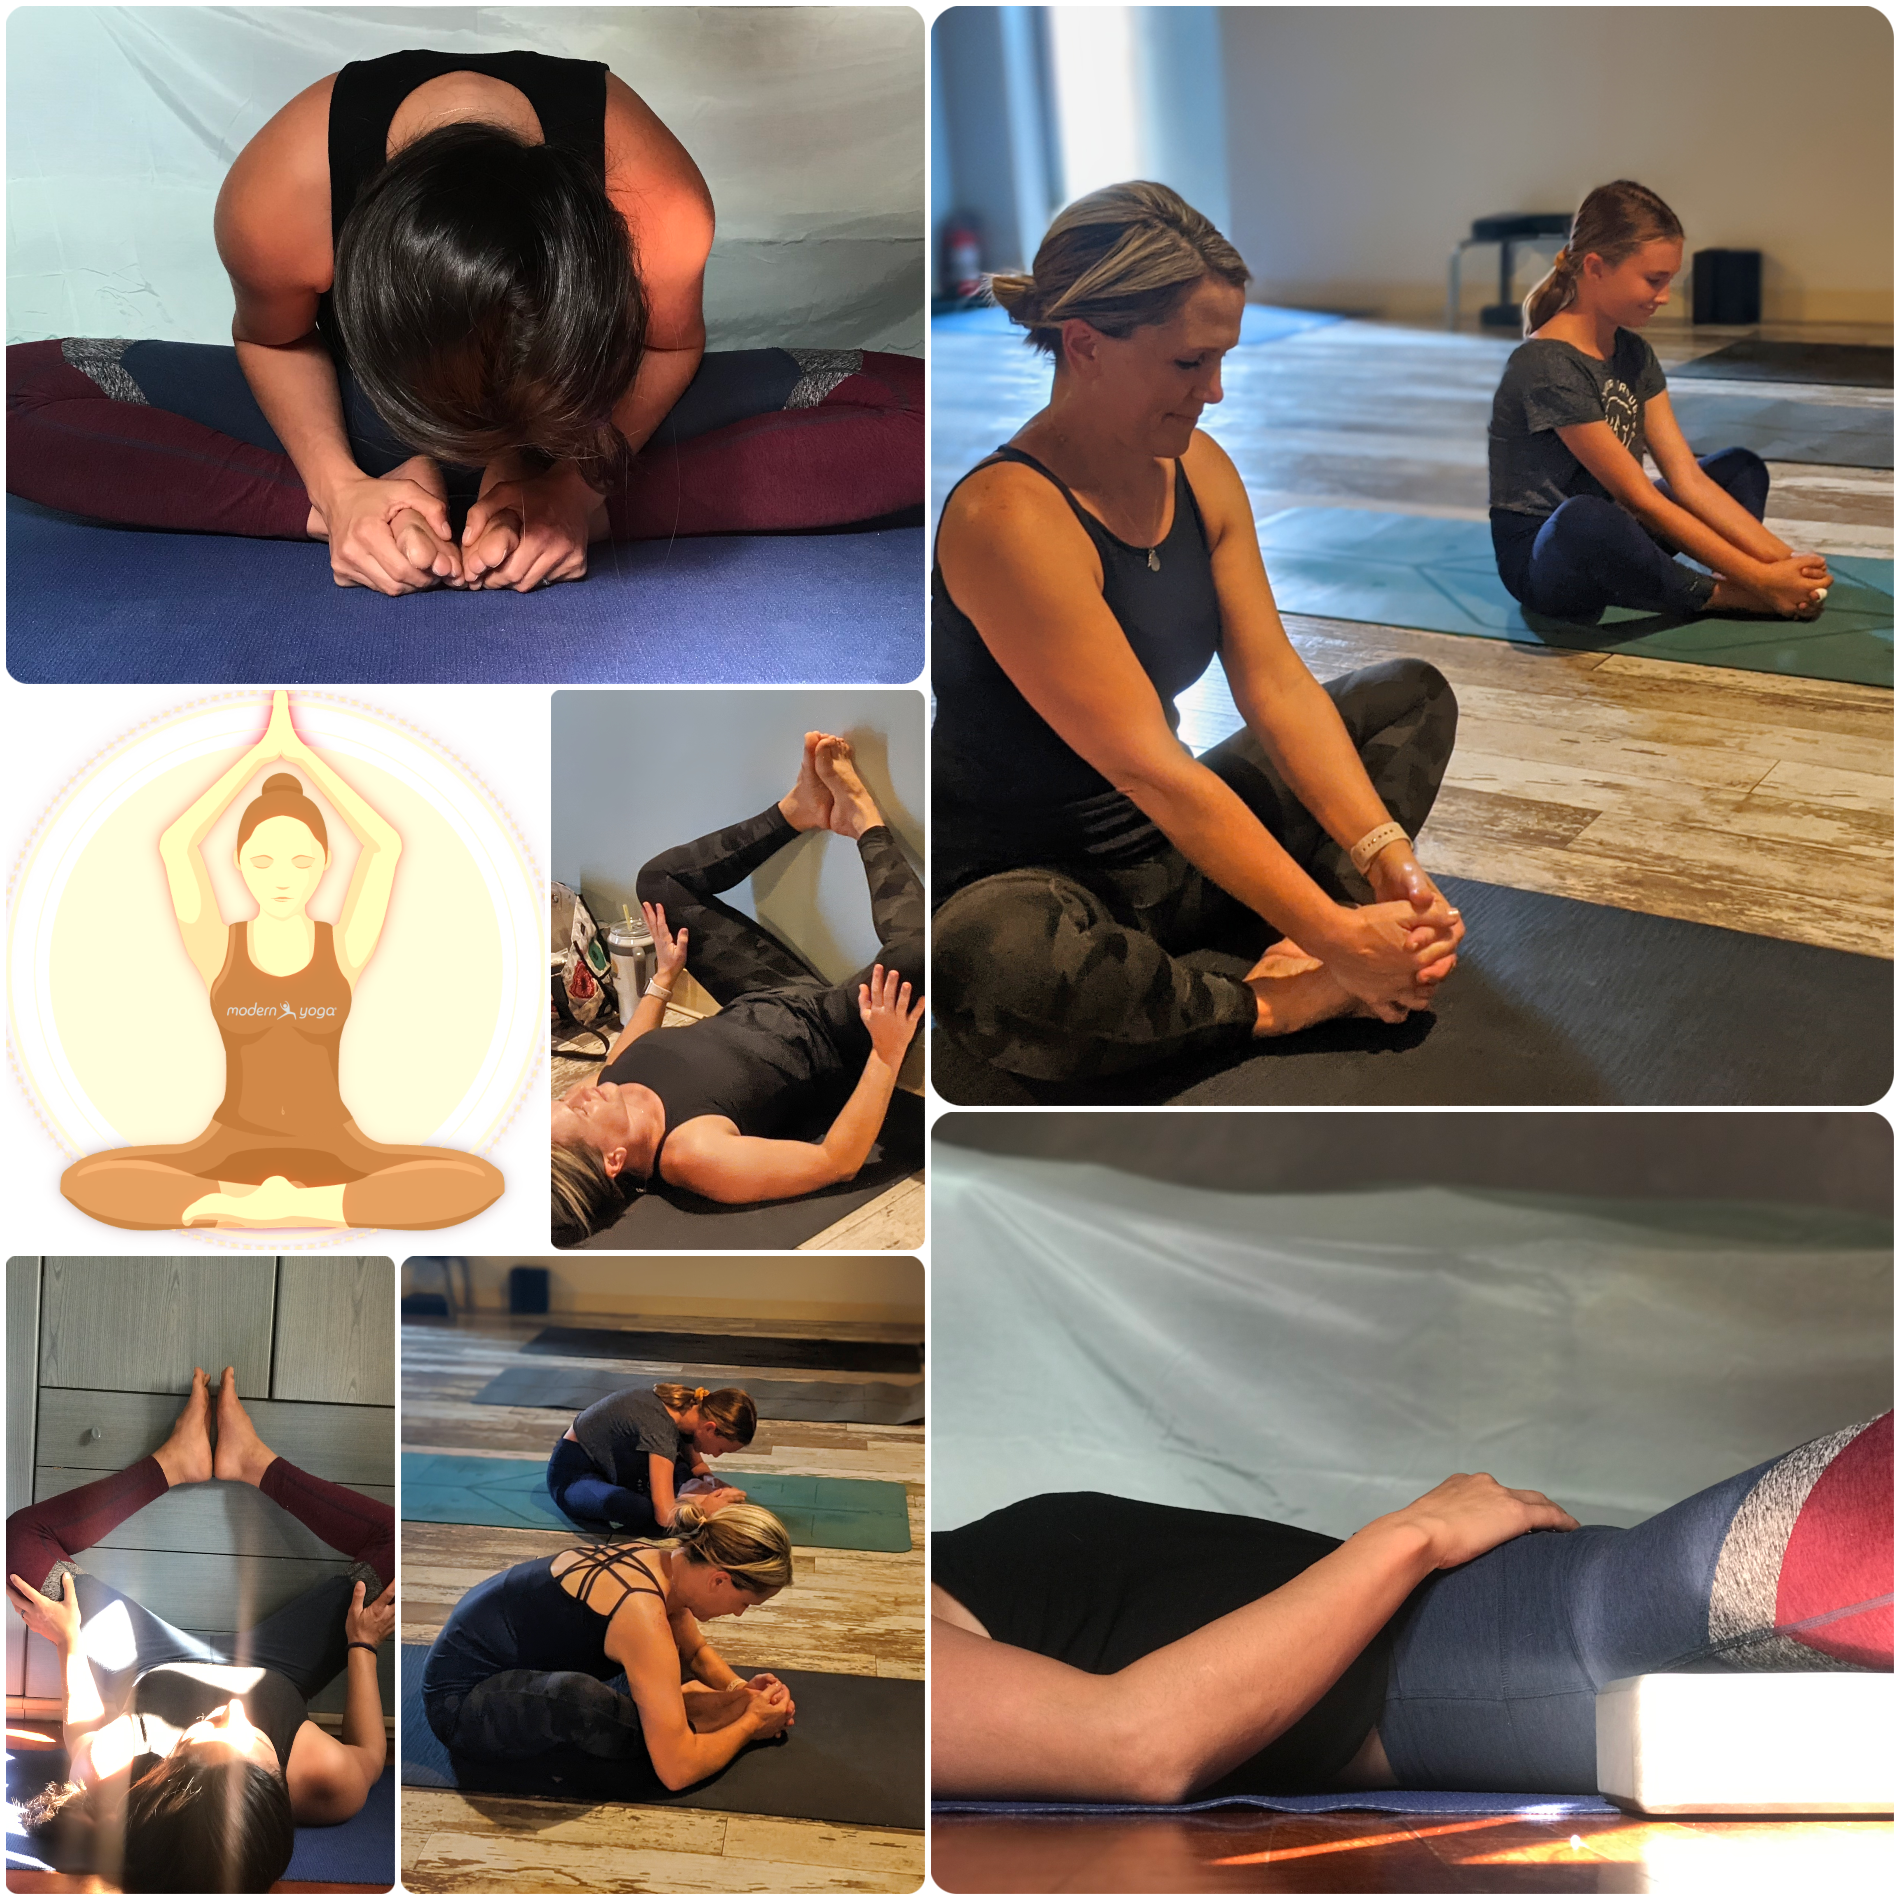 Butterfly pose collage